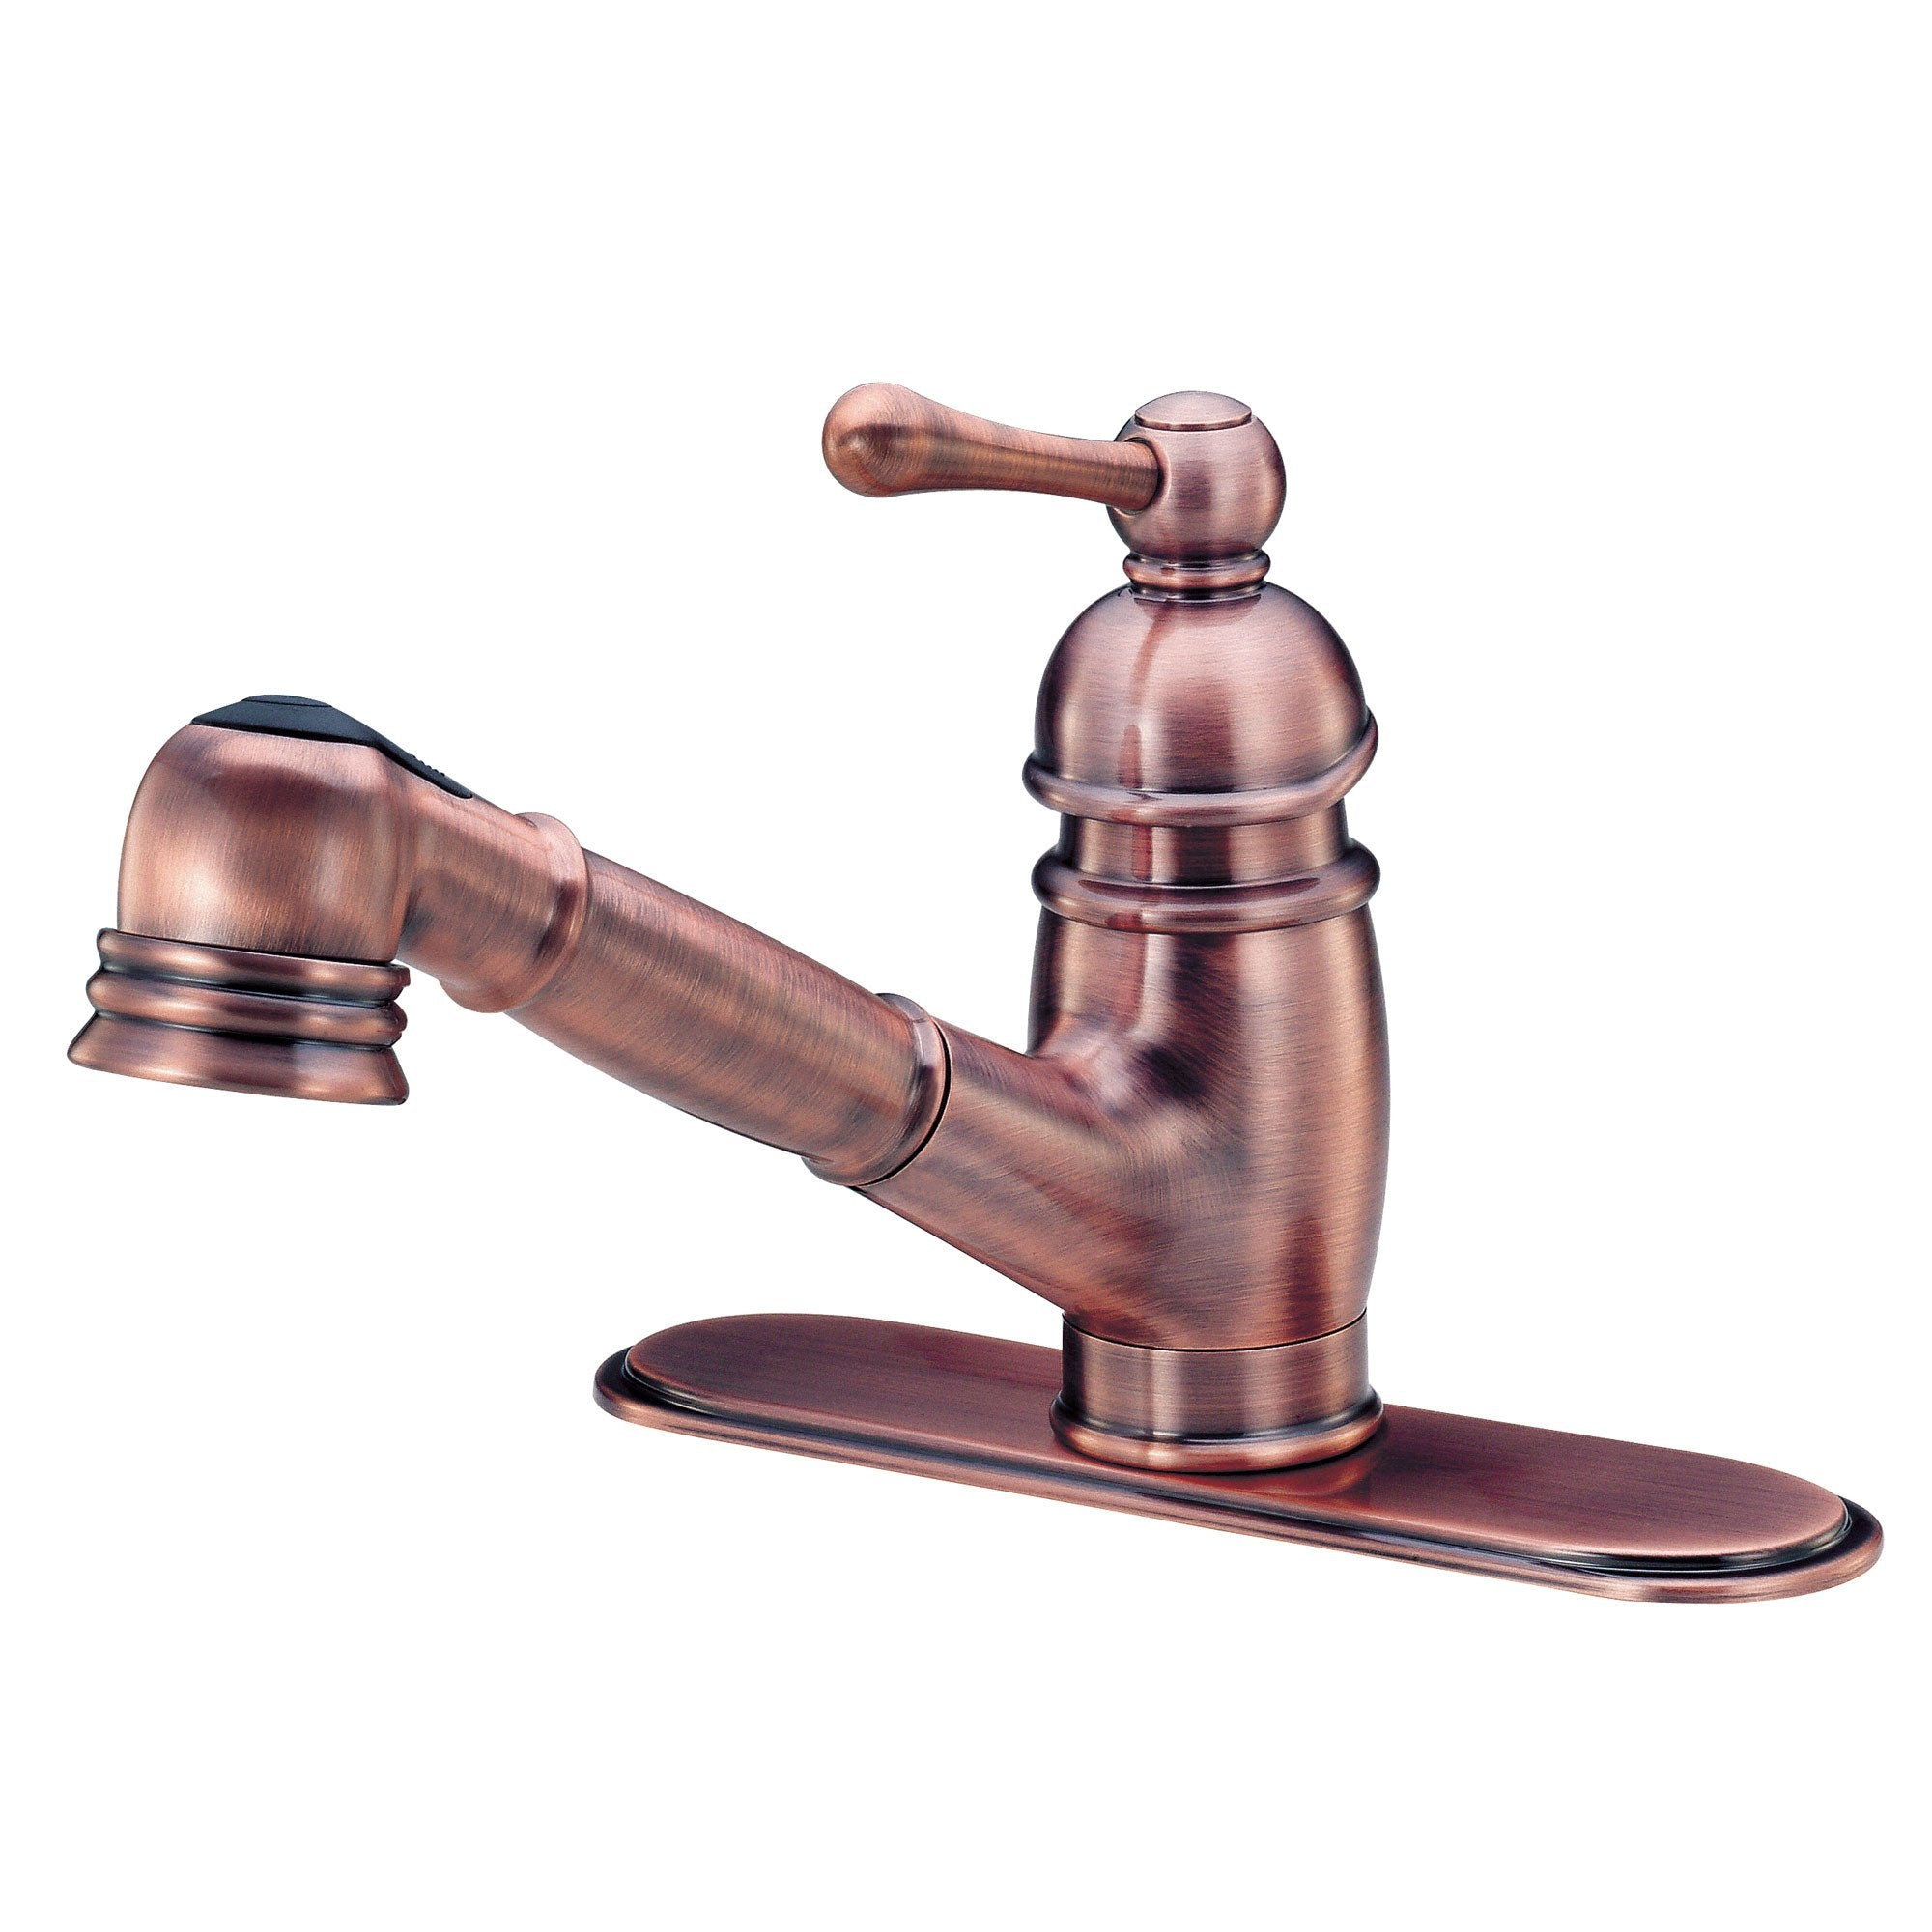 Danze Opulence Antique Copper Single Handle Pull-Out Spout Kitchen Faucet